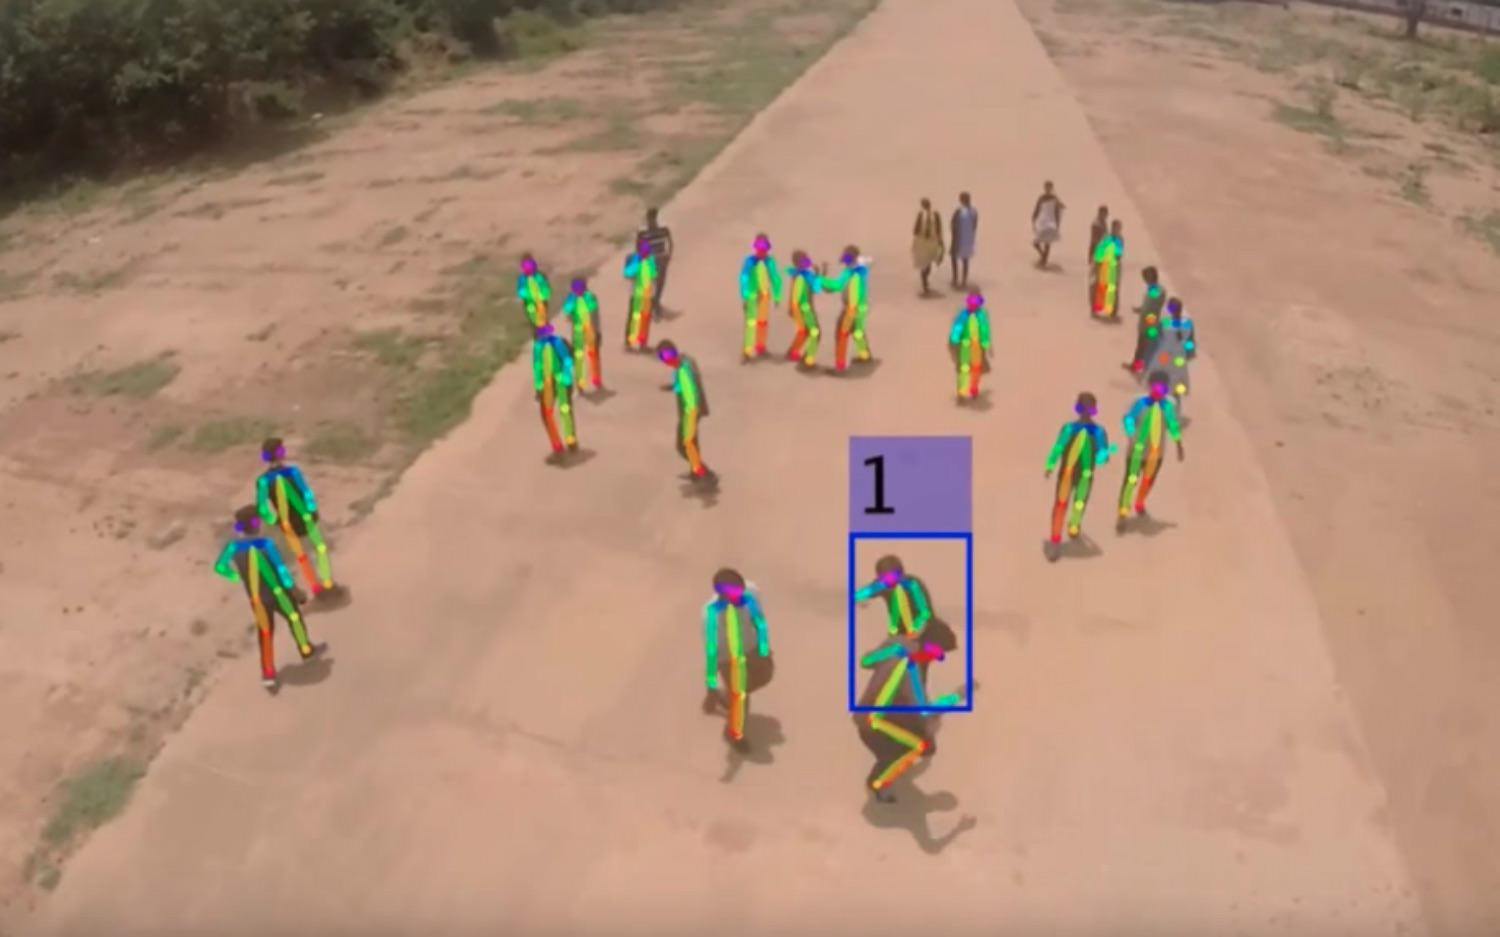 Using A Drone And AI To Spot Fighting People In Crowd